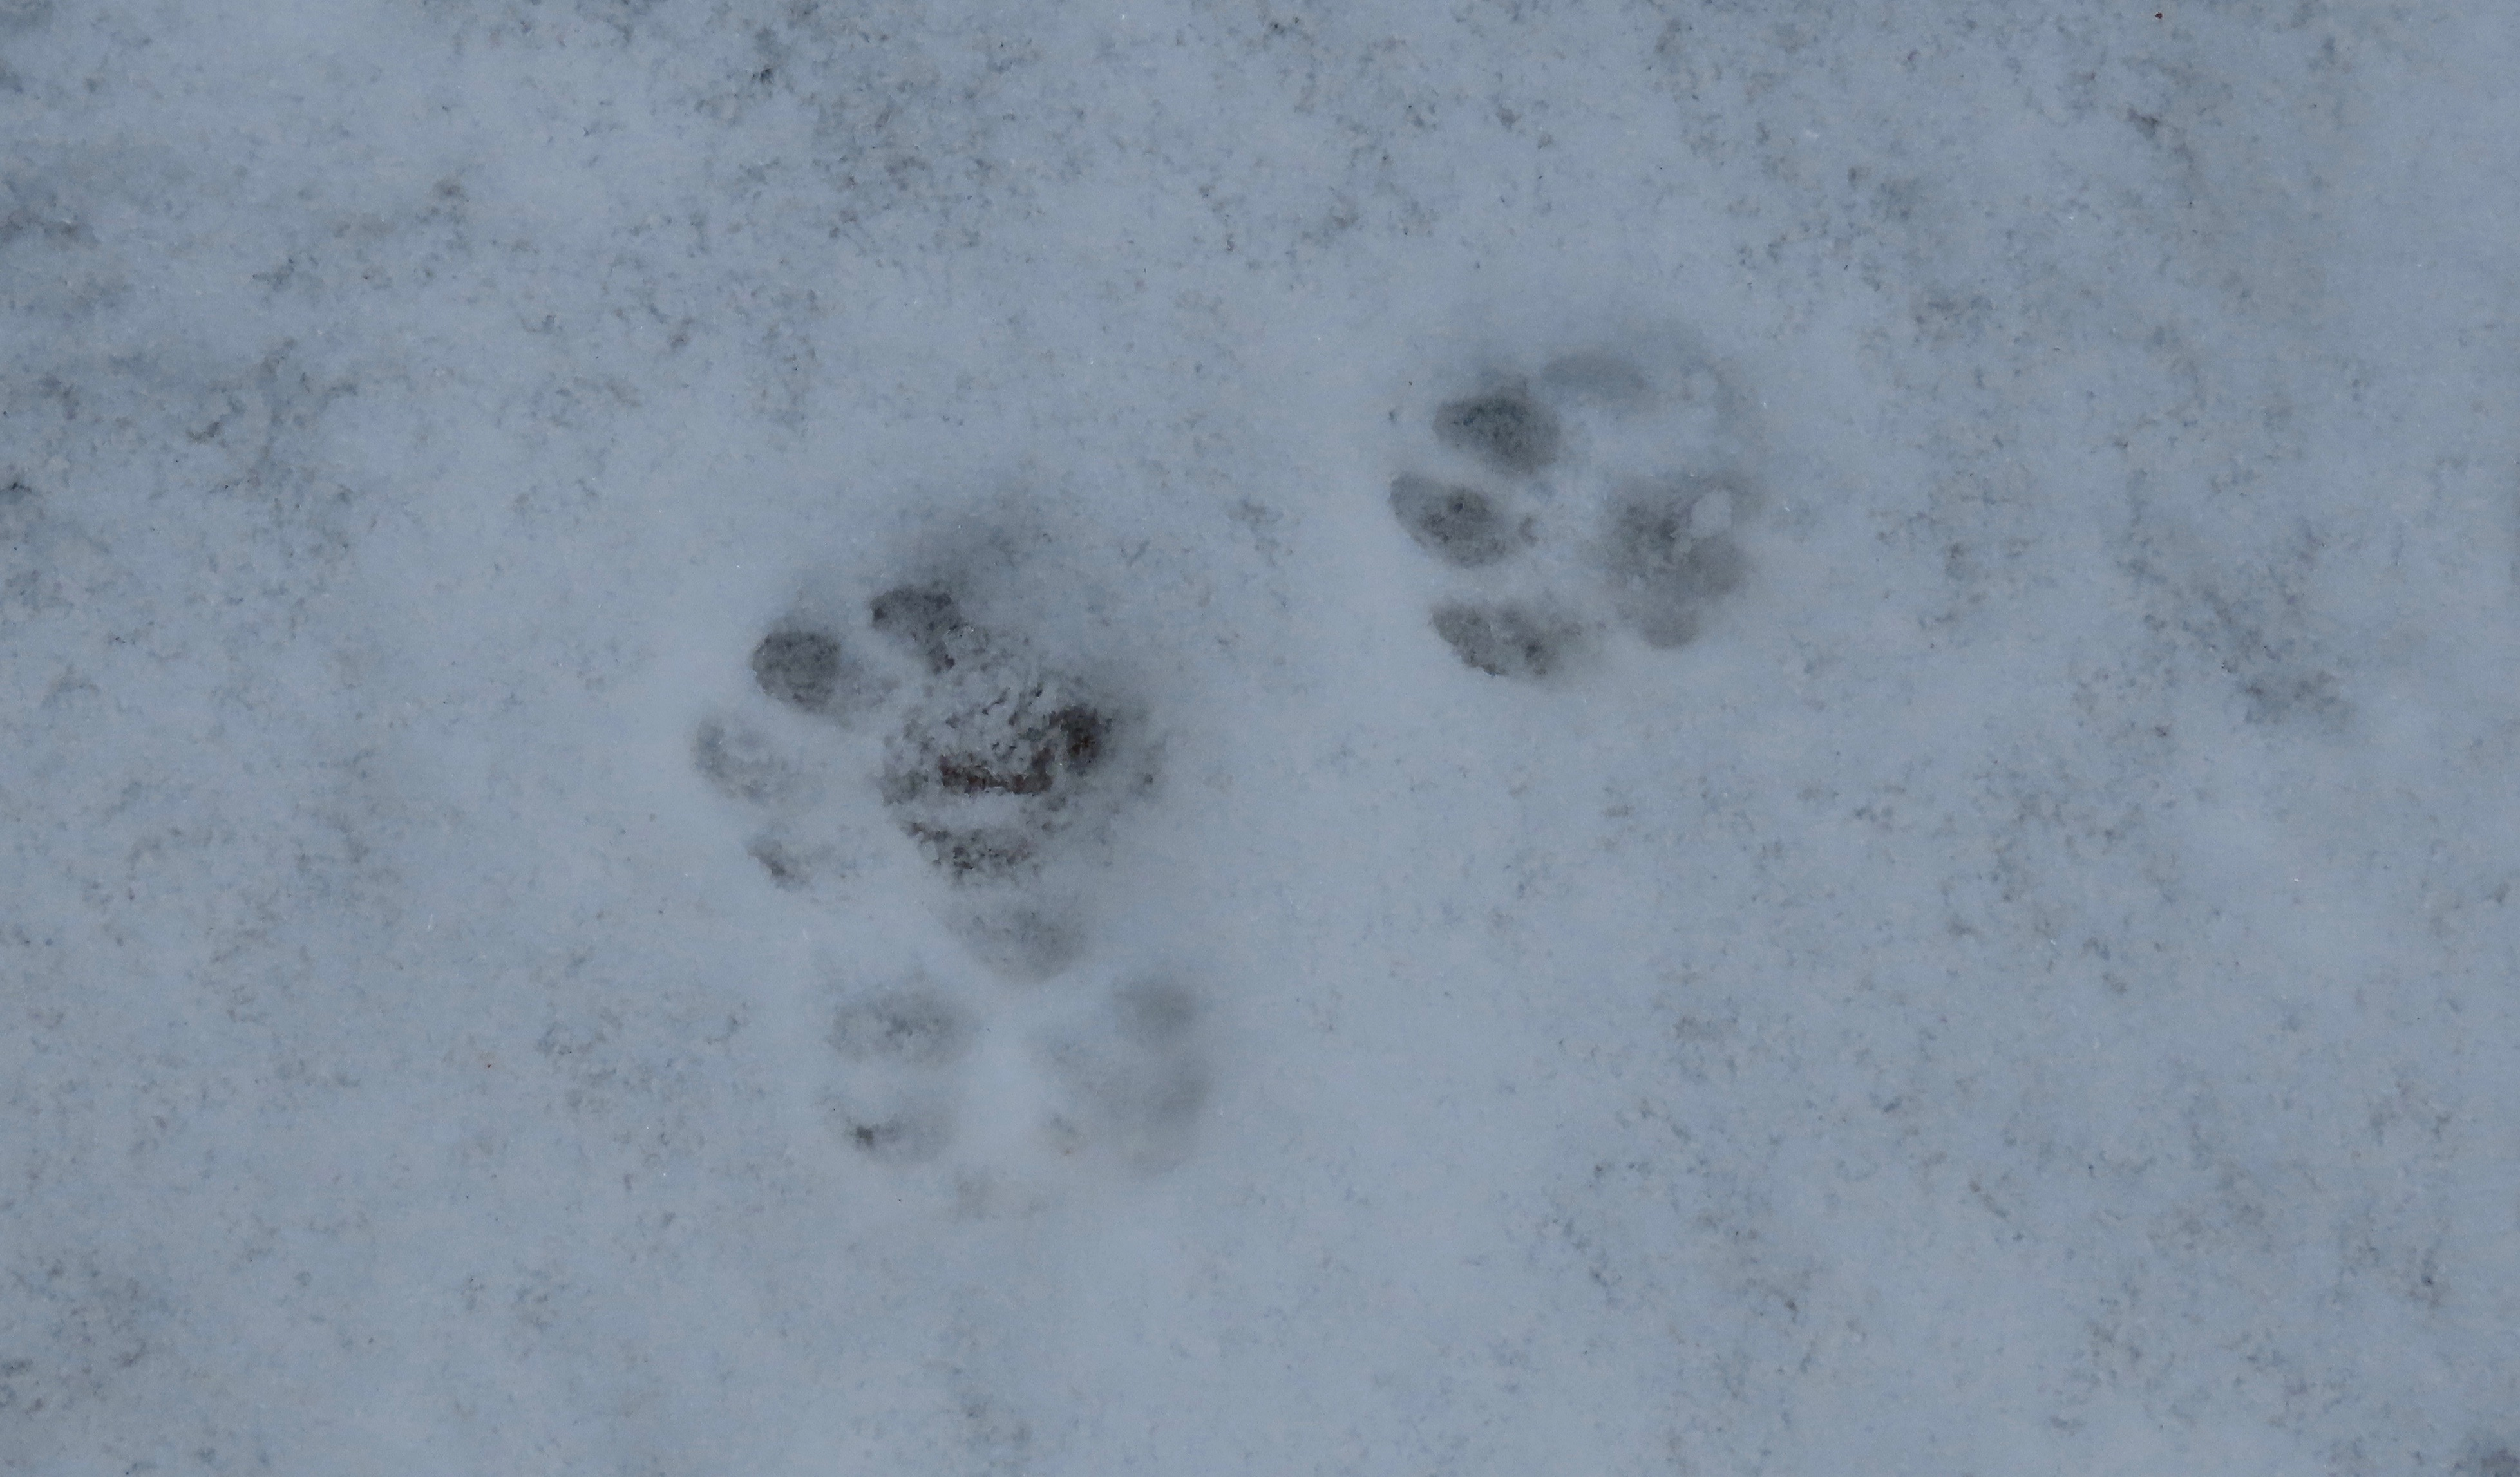 Bobcat tracks in snow Pothole Trail Sespe Wilderness Los Padres National Forest